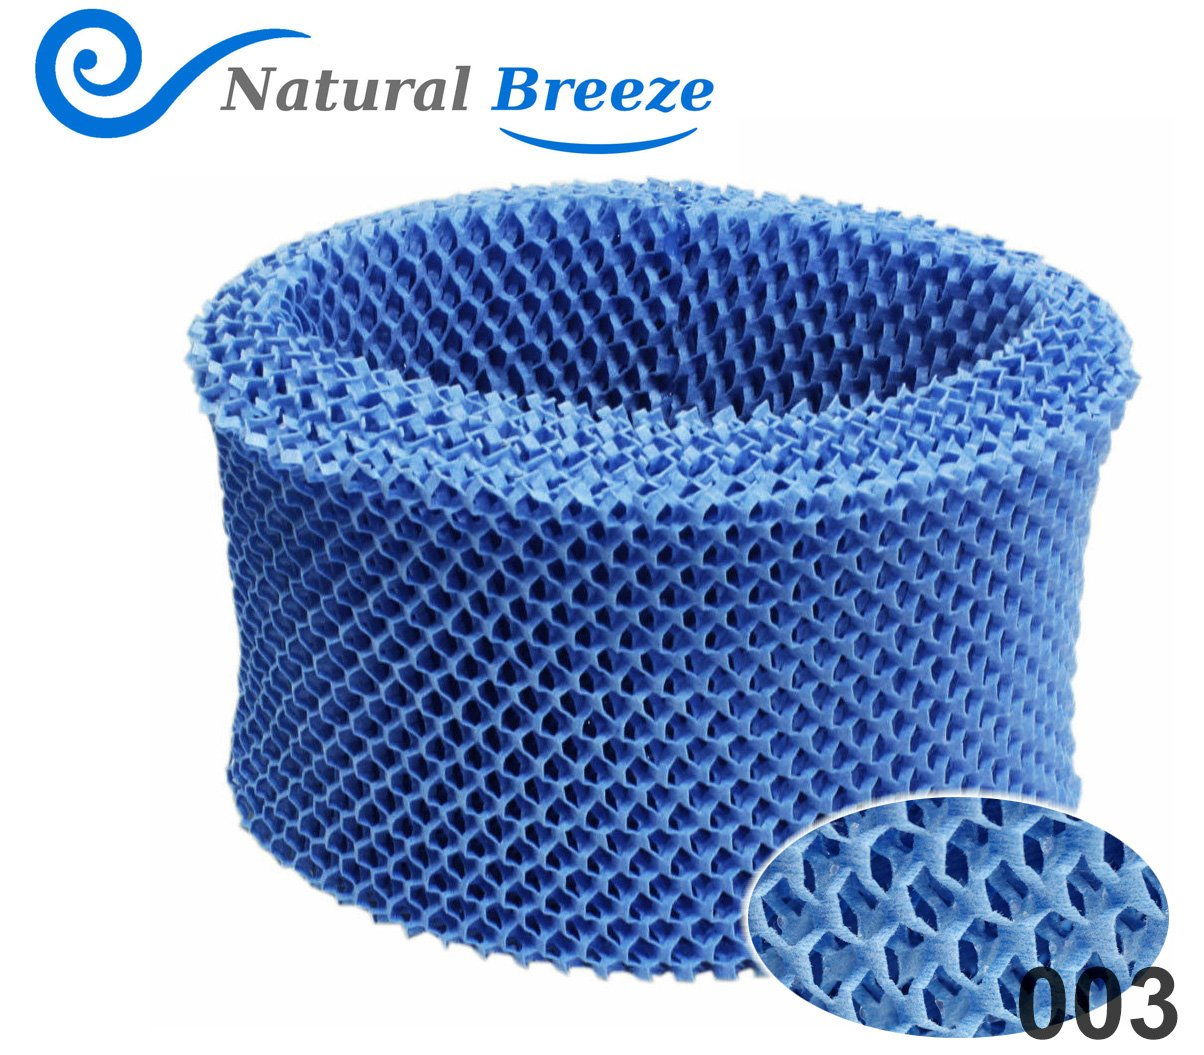 Humidifier Filter LONG LIFE Replaces HC-14 HWF75 HWF221 for Holmes Honeywell =REUSABLE= Natural-Breeze